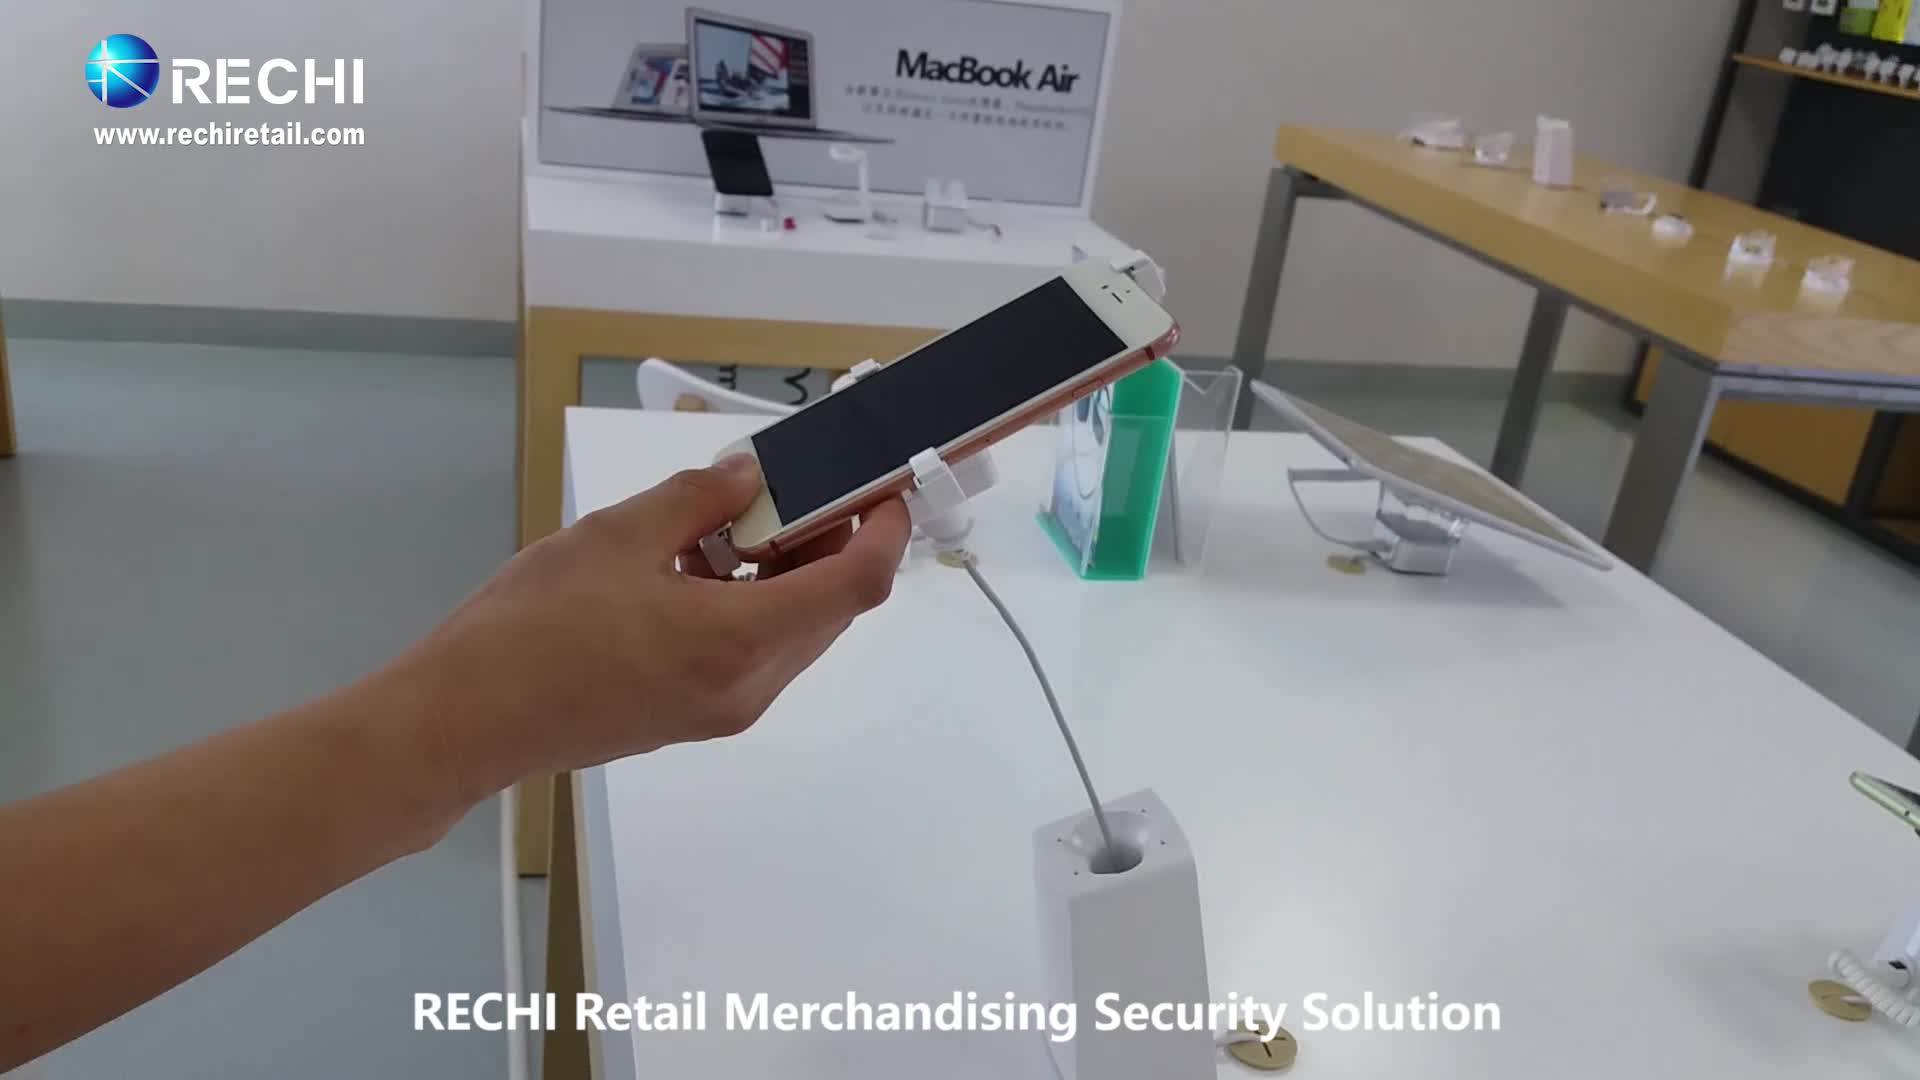 RECHI Retail Merchandising Display Security/Anti-theft Display Device With Internal Recoiling Cable for Mobile Phone